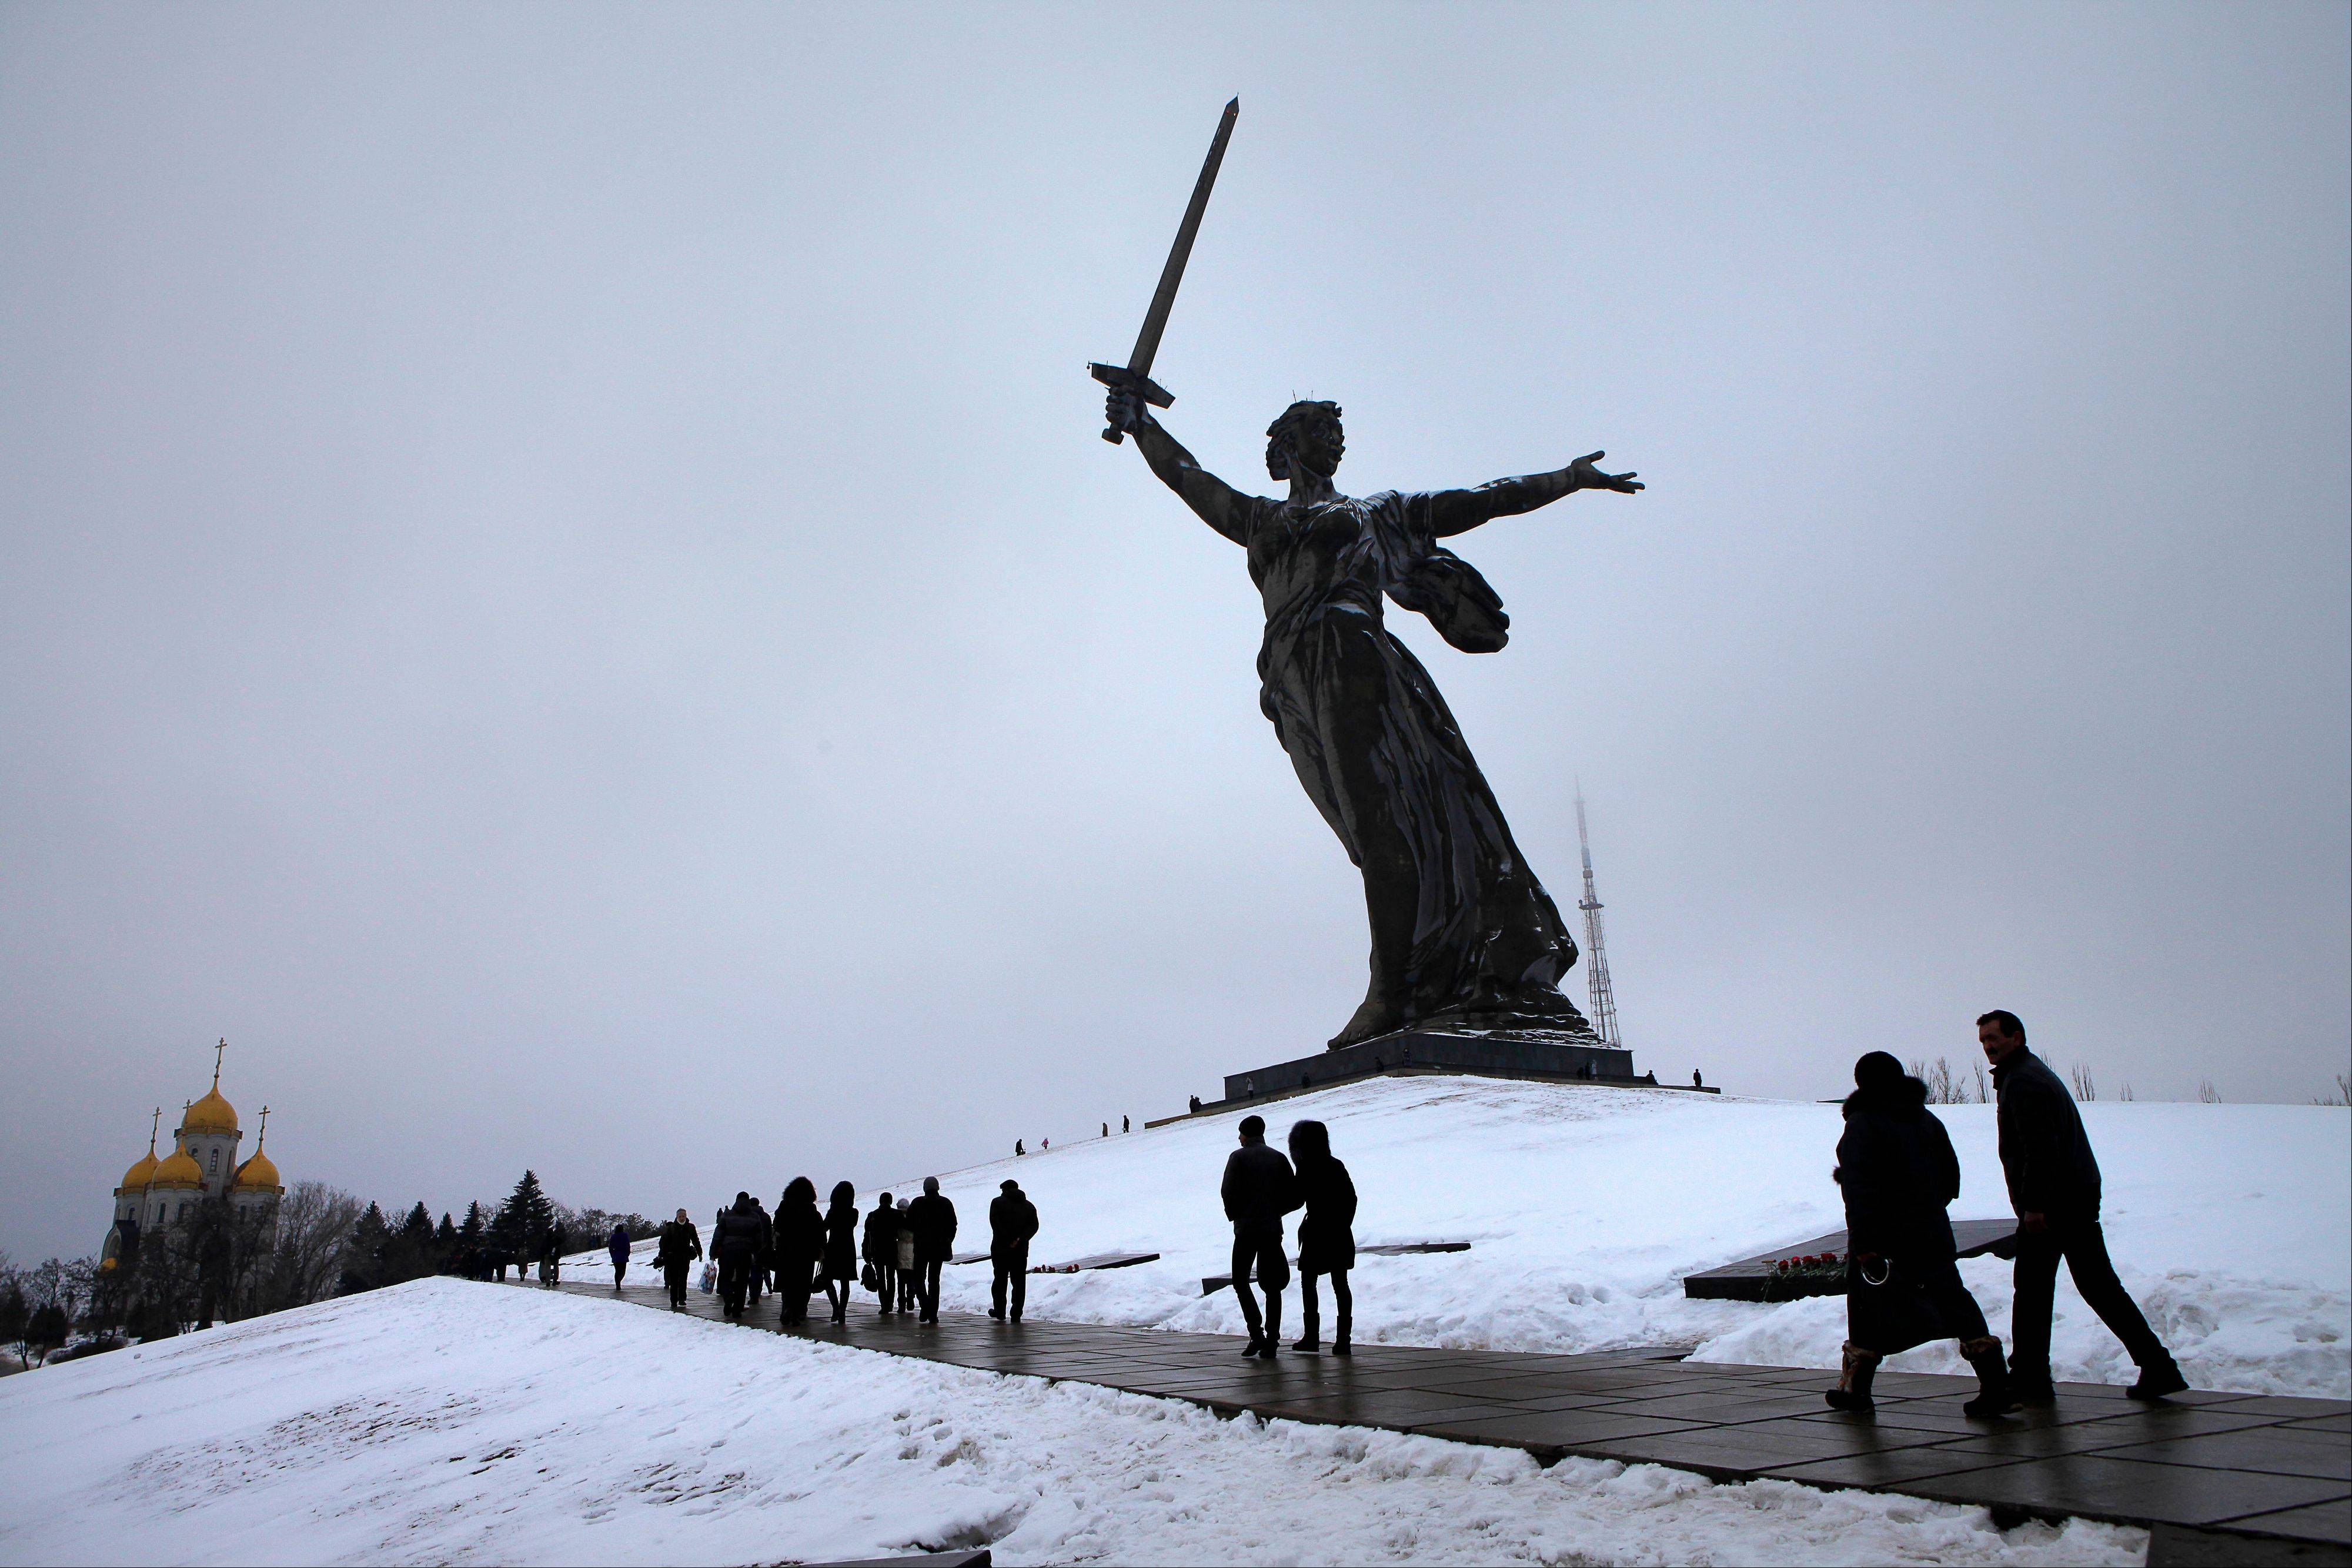 People walk past the monument to Motherland Saturday during ceremonies marking the 70th anniversary of the Battle of Stalingrad in the southern Russian city of Volgograd, once known as Stalingrad.